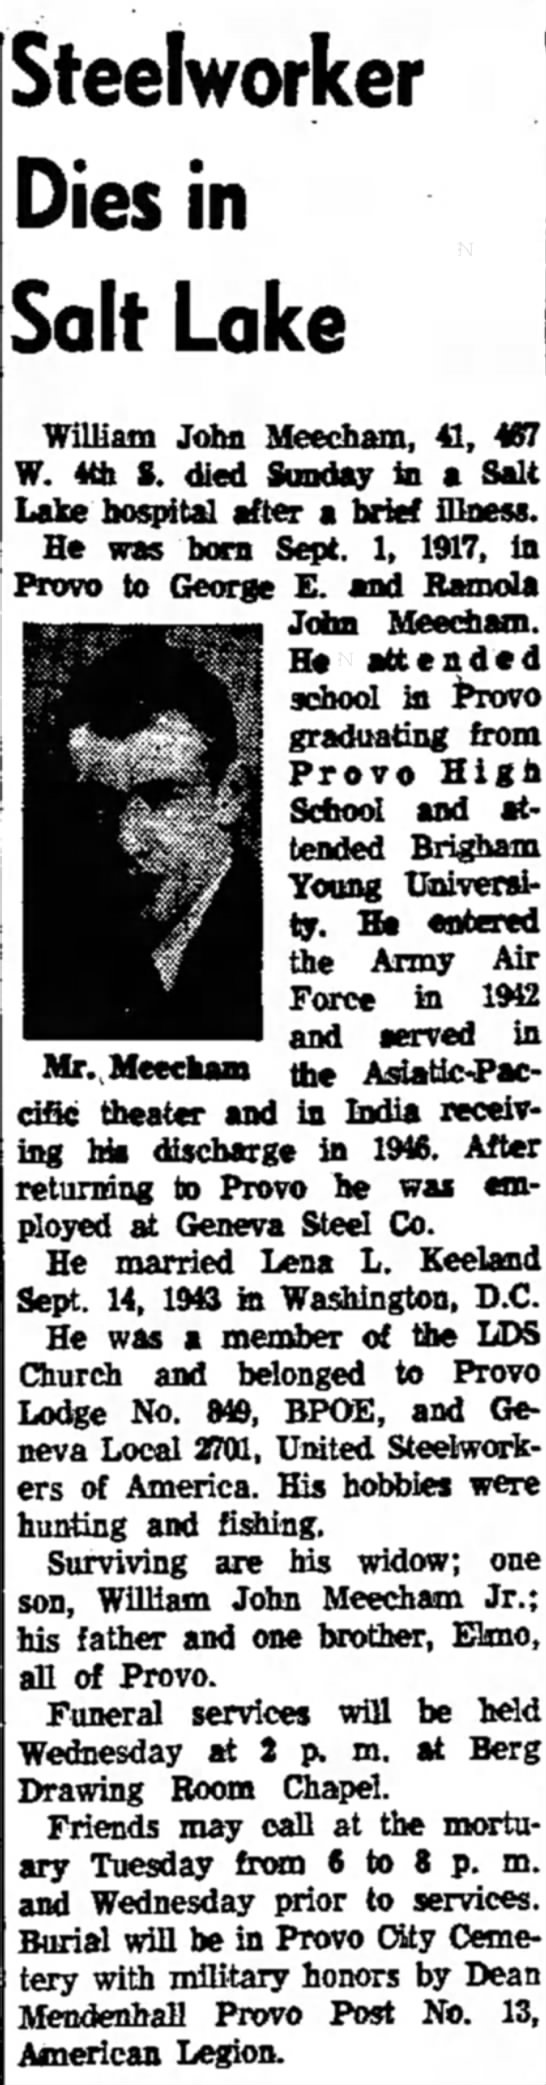 Willaim John Mecham Obituary  from The Daily Herald, pg 4 on 22 Dec 1958 -